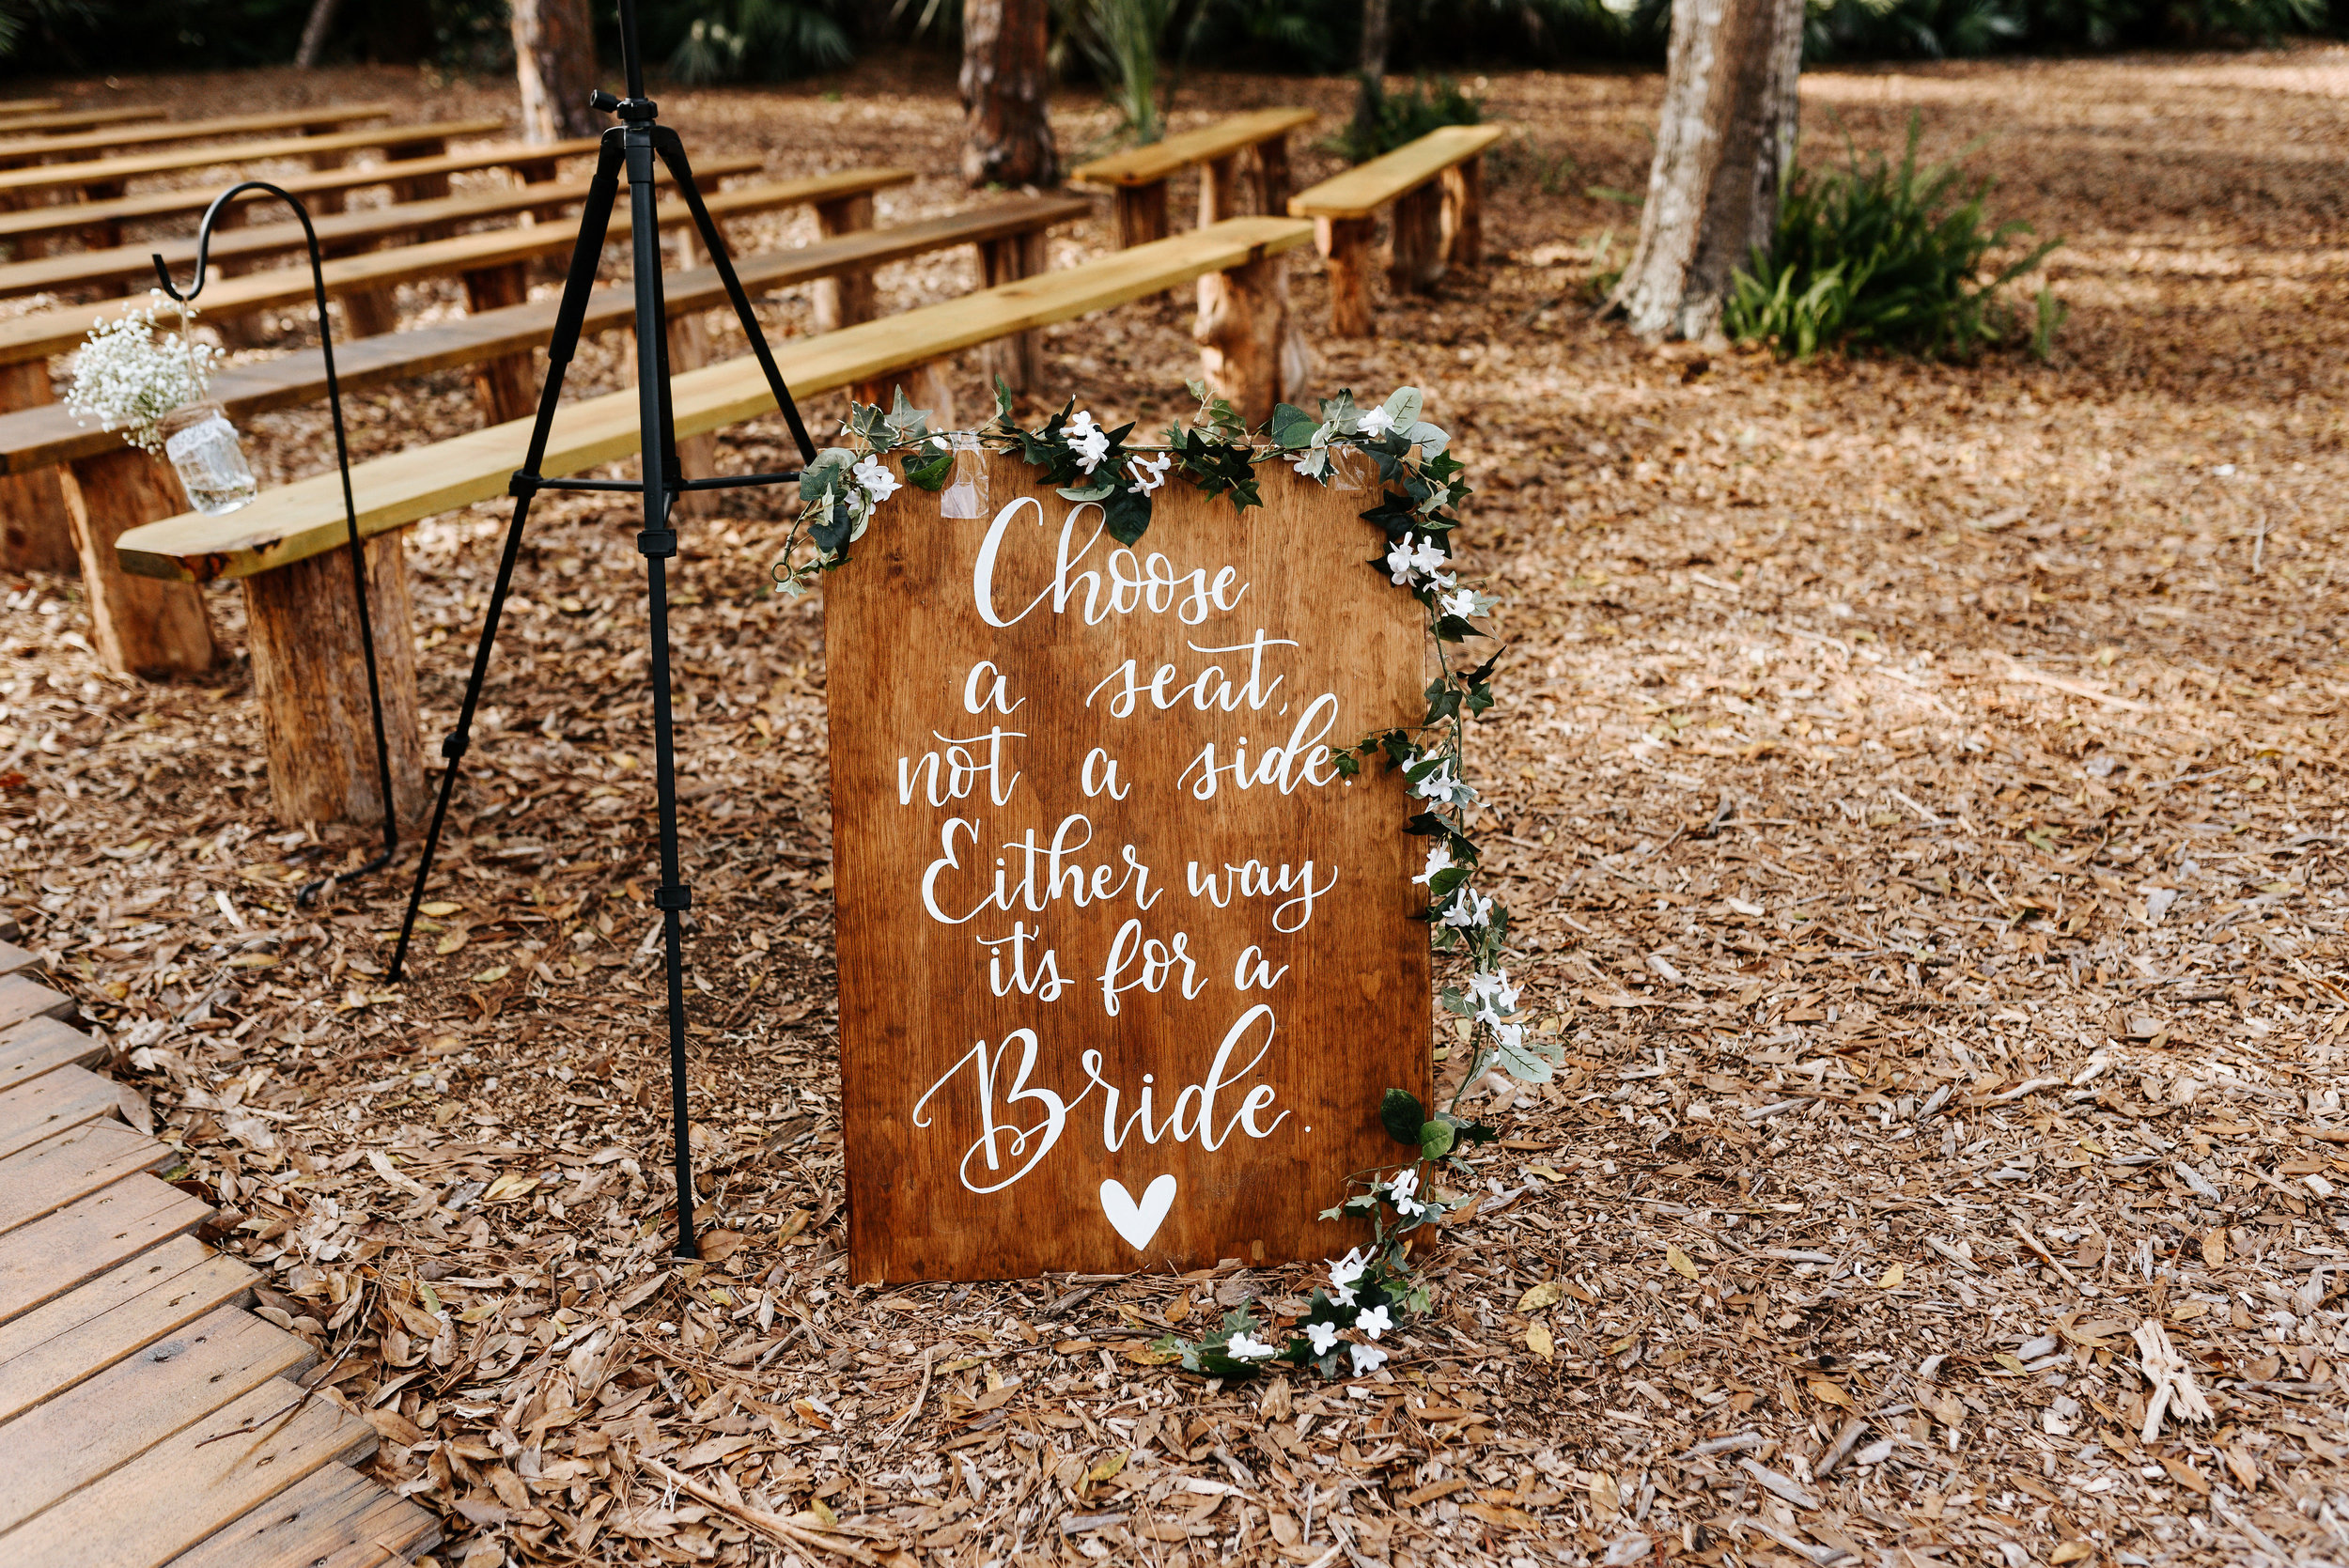 Alexia_Celeste_Wedding_Cielo_Blu_Barn_Photography_by_V_5888.jpg